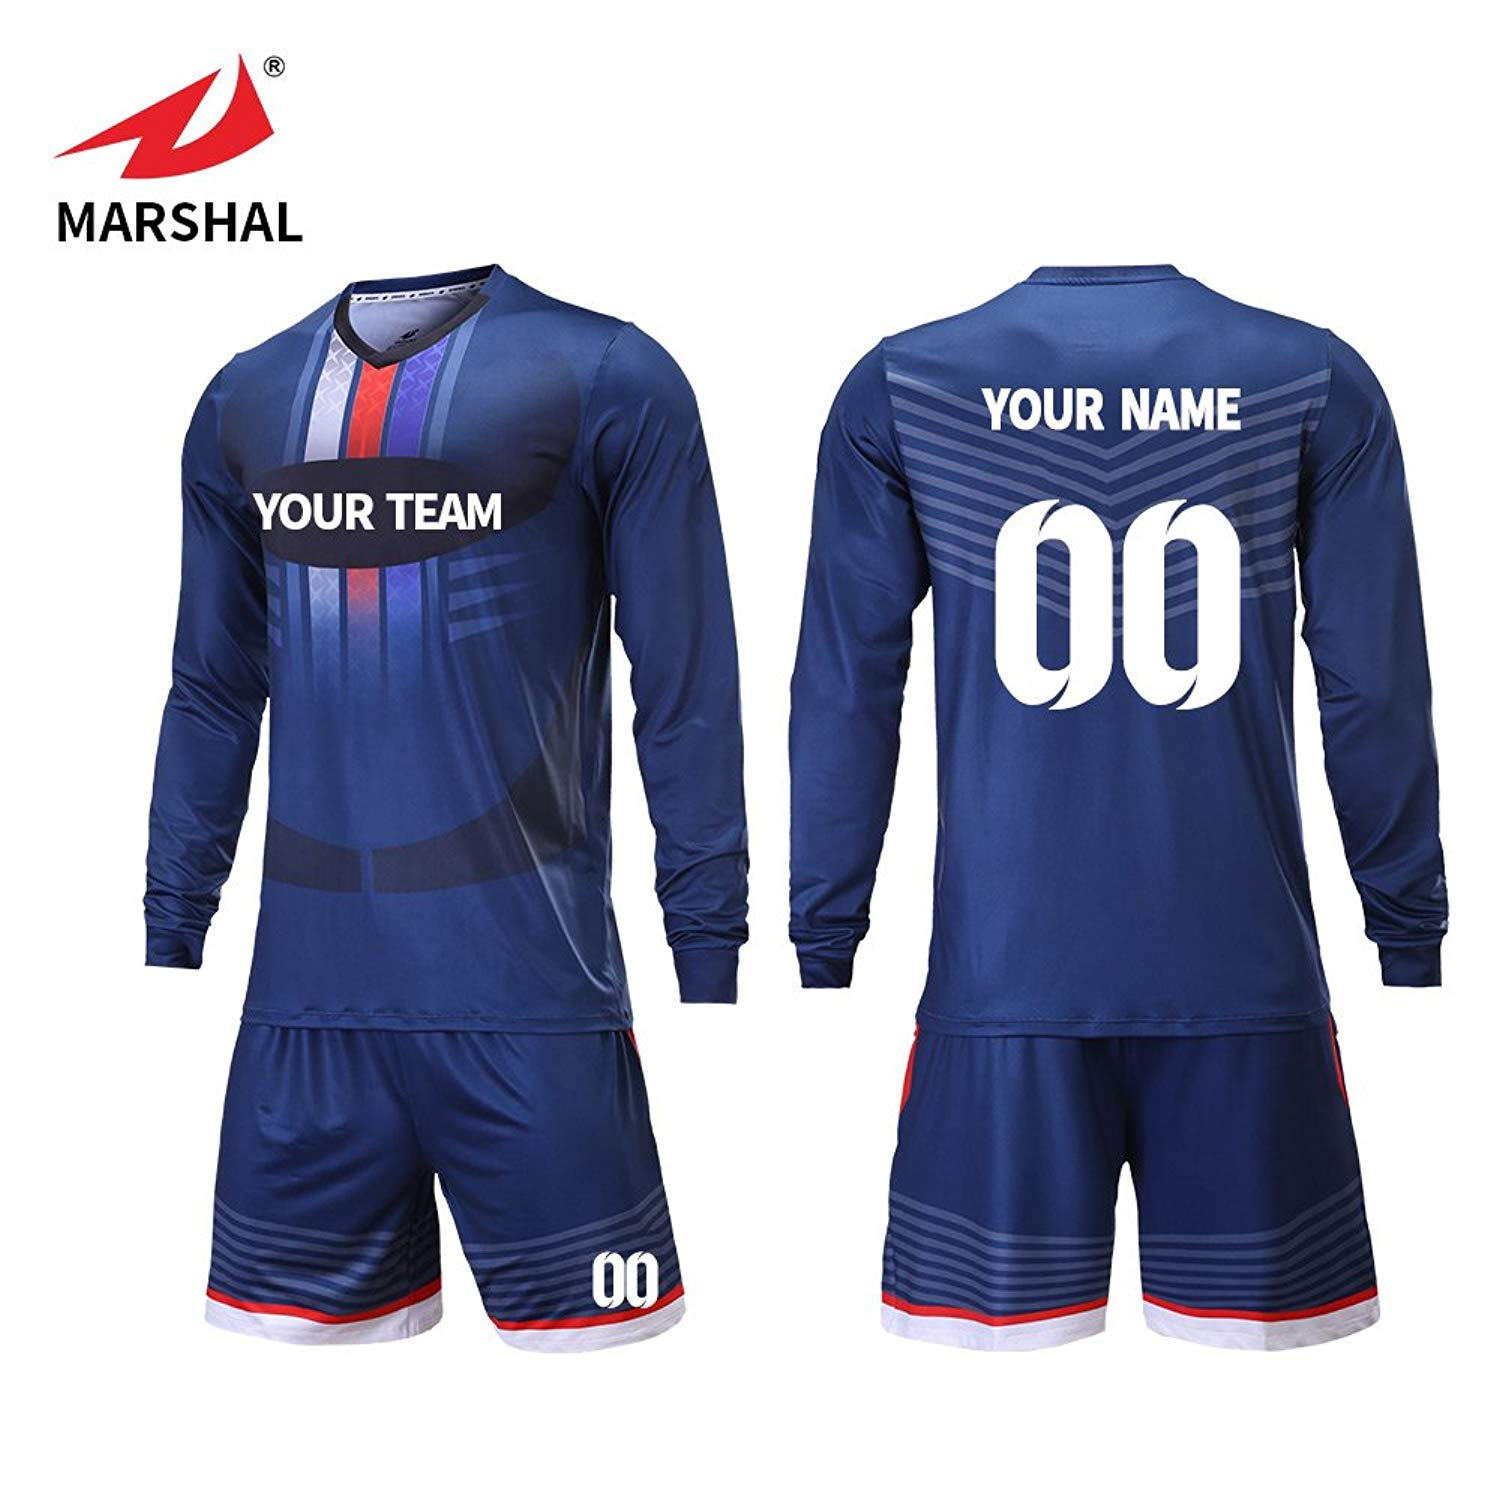 444a382bfd73 Get Quotations · Marshal Jersey Custom Team Soccer Jerseys Soccer Team  Training Equipment Long Sleeves Soccer Uniforms Design Your